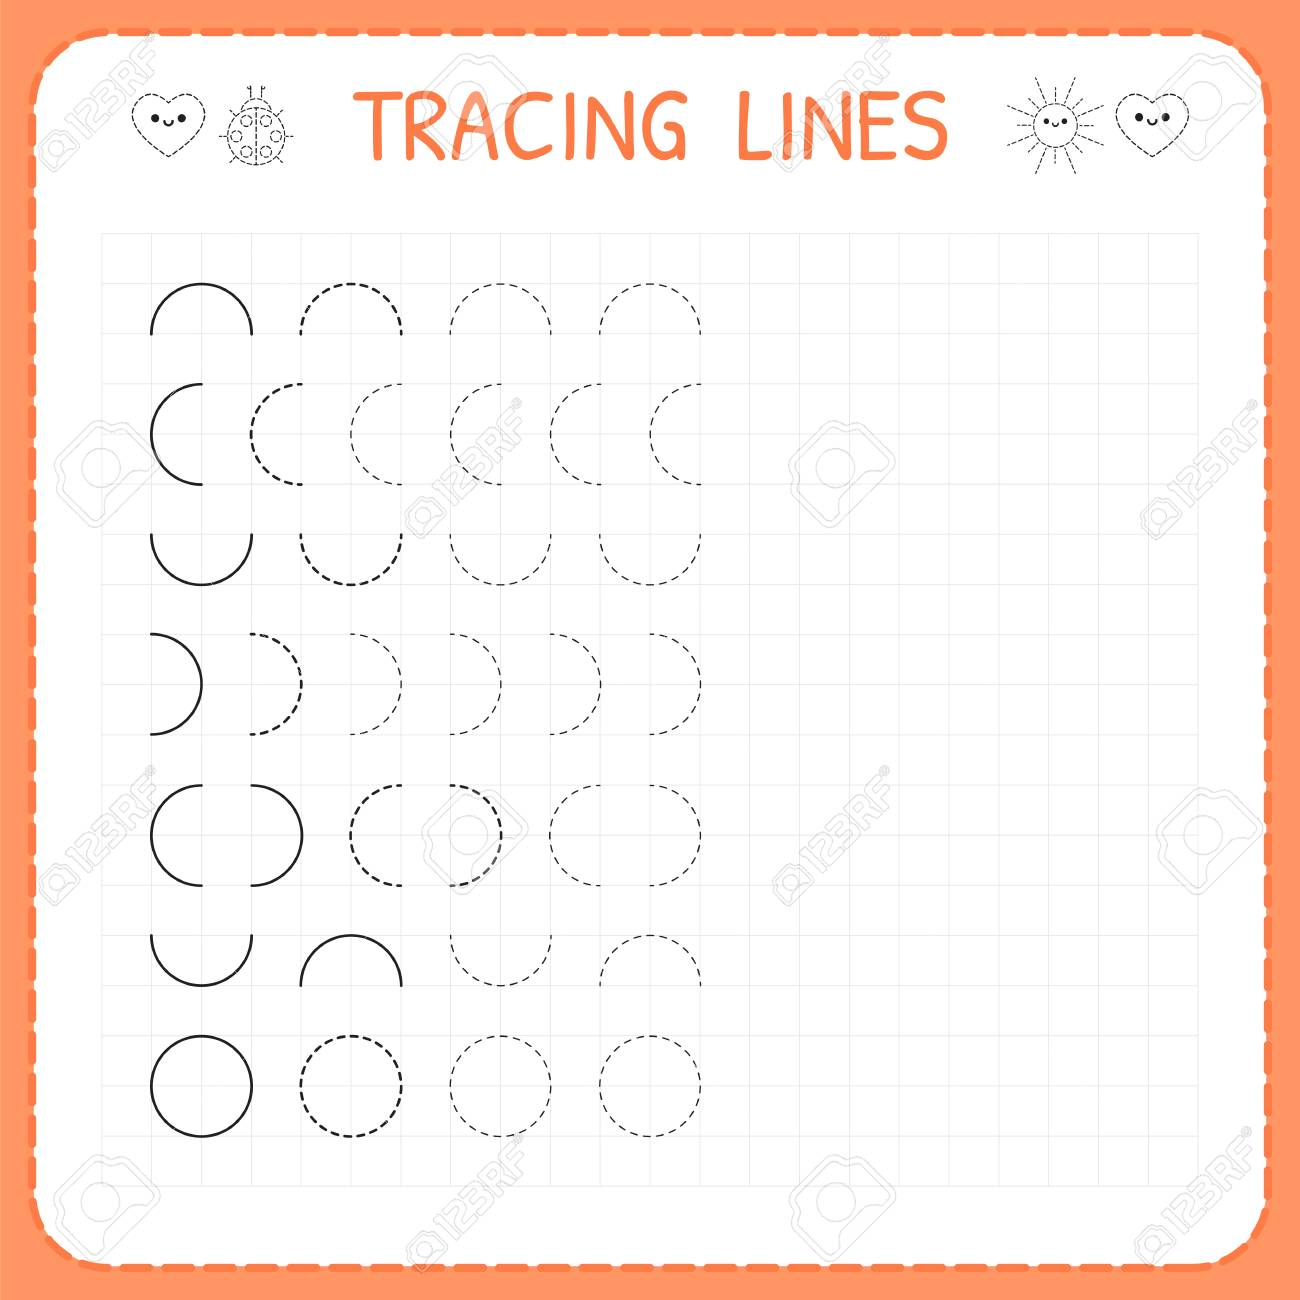 Tracing Lines Worksheet For Kids Basic Writing Working Pages